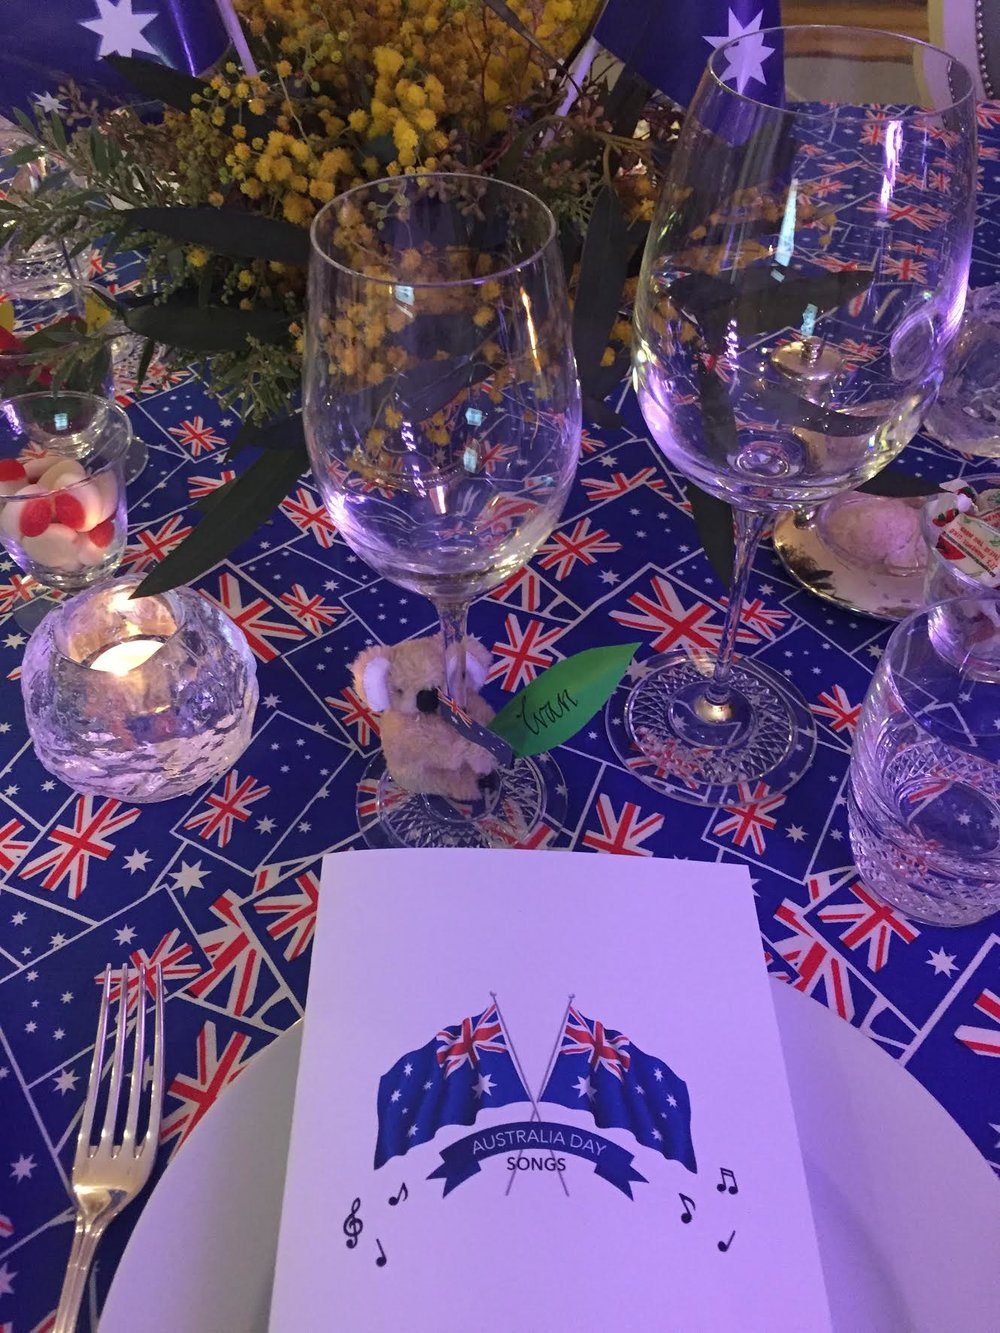 Australia Day Table Setting.jpg